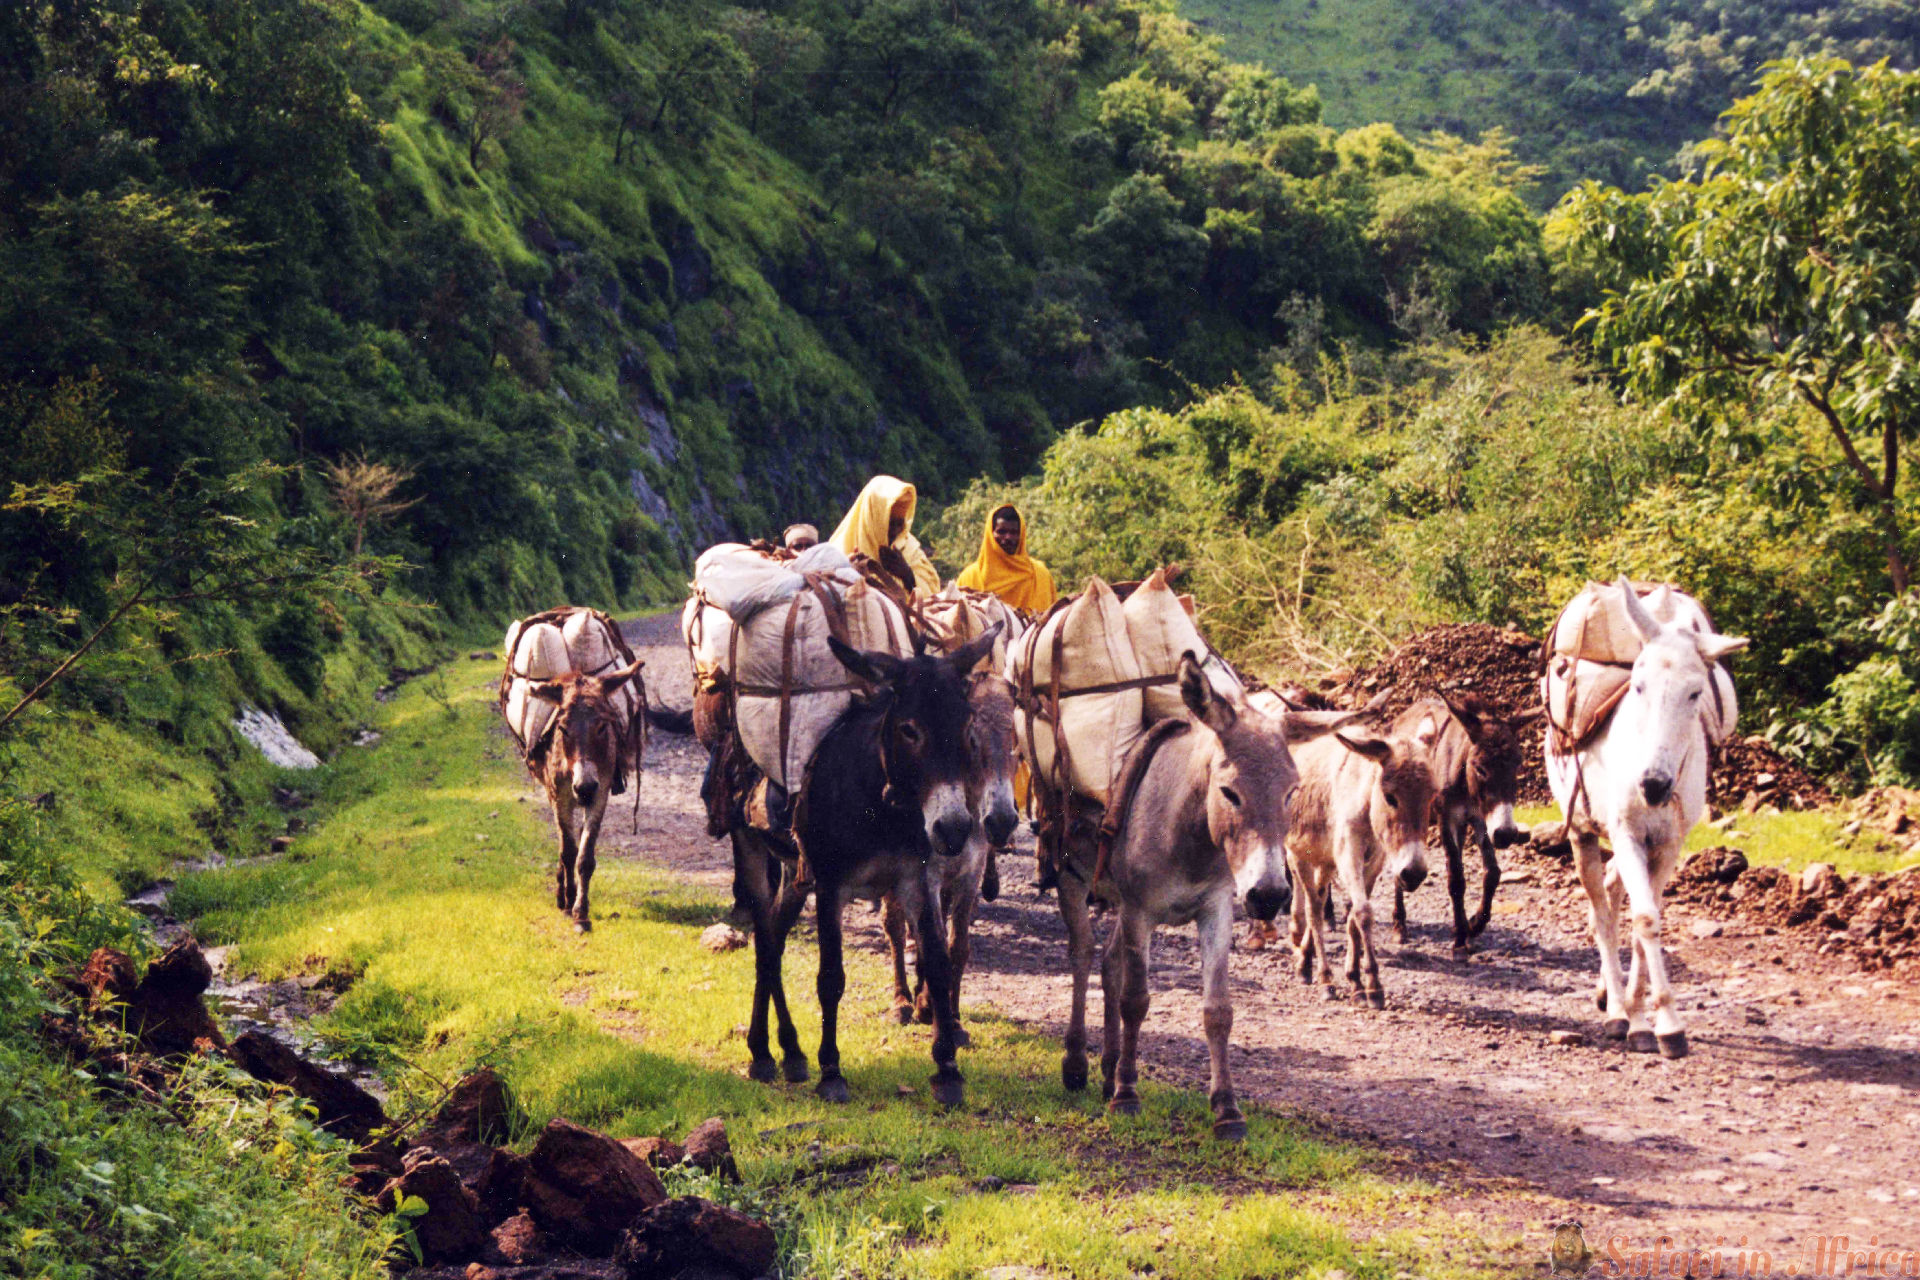 A caravan of donkeys in the tigray area in ethiopia